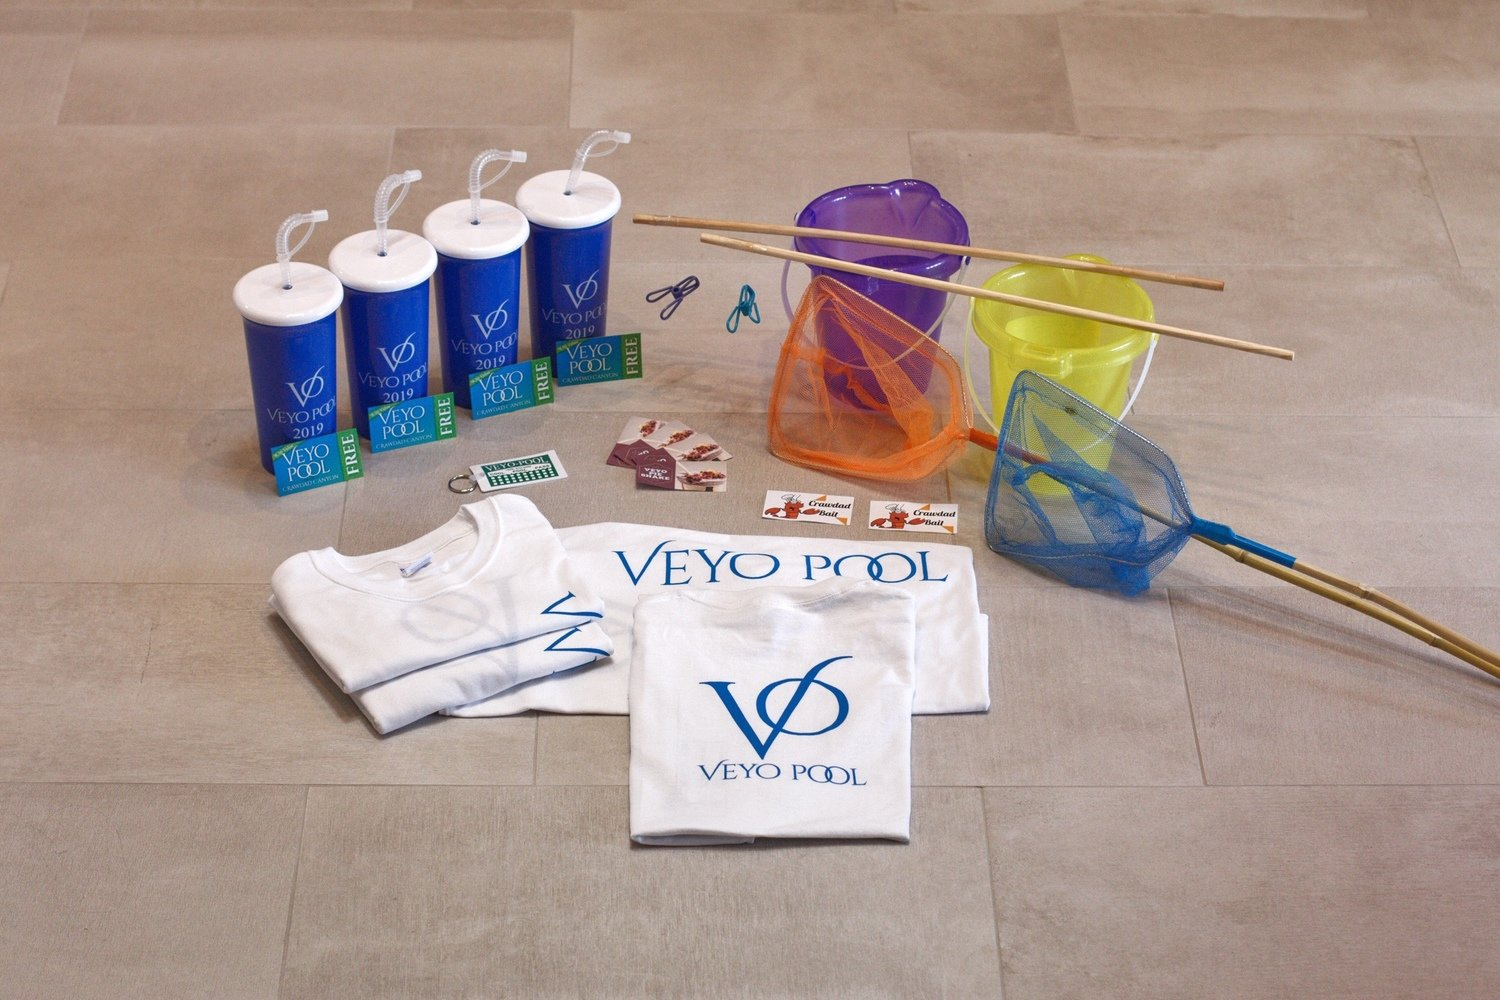 The Ultimate Veyo Pool Family Gift Package